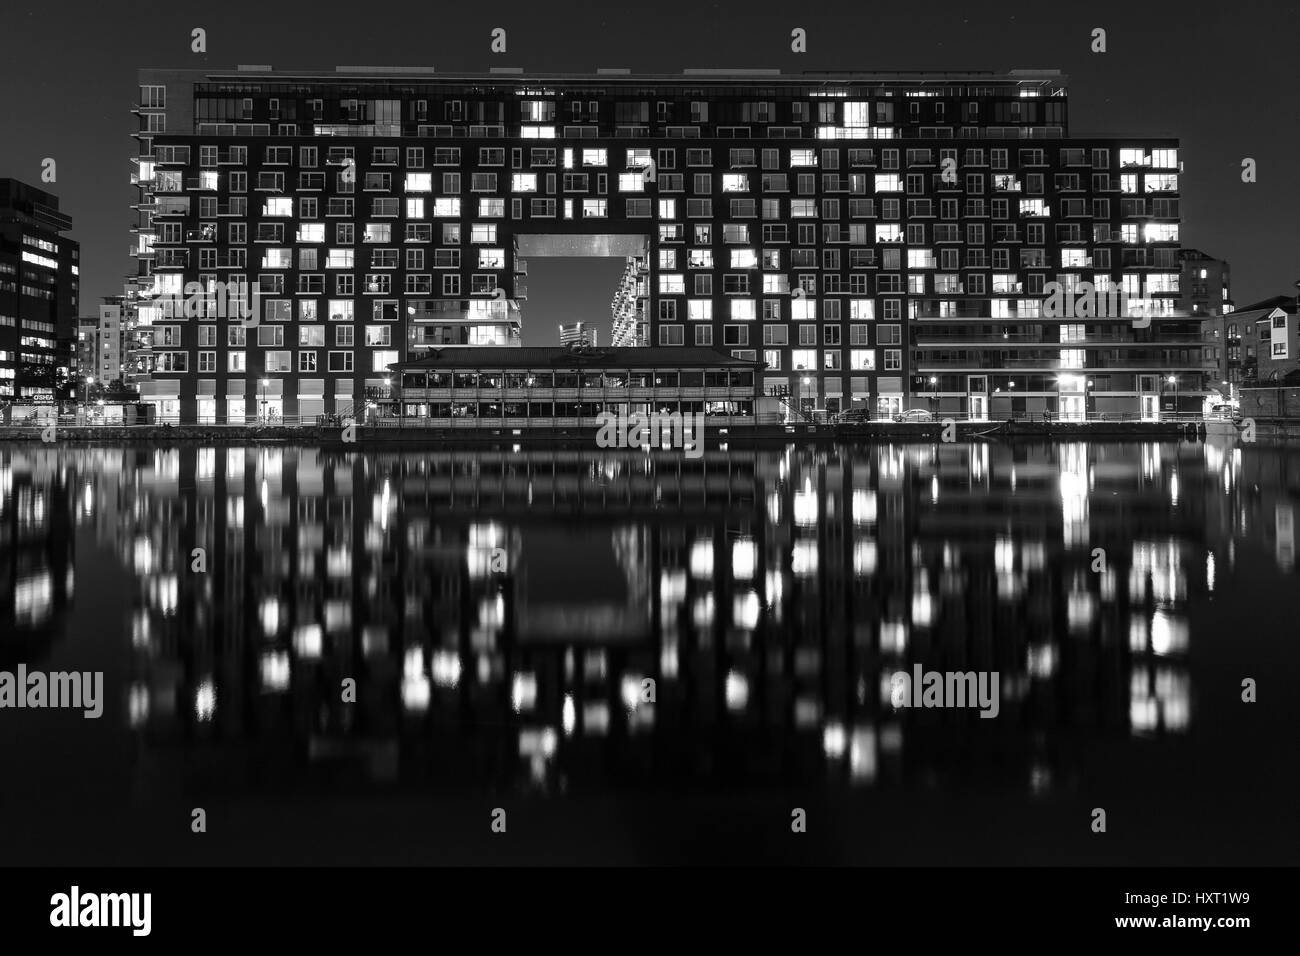 Building at night in marina with reflections of lights, London Docklands - Stock Image